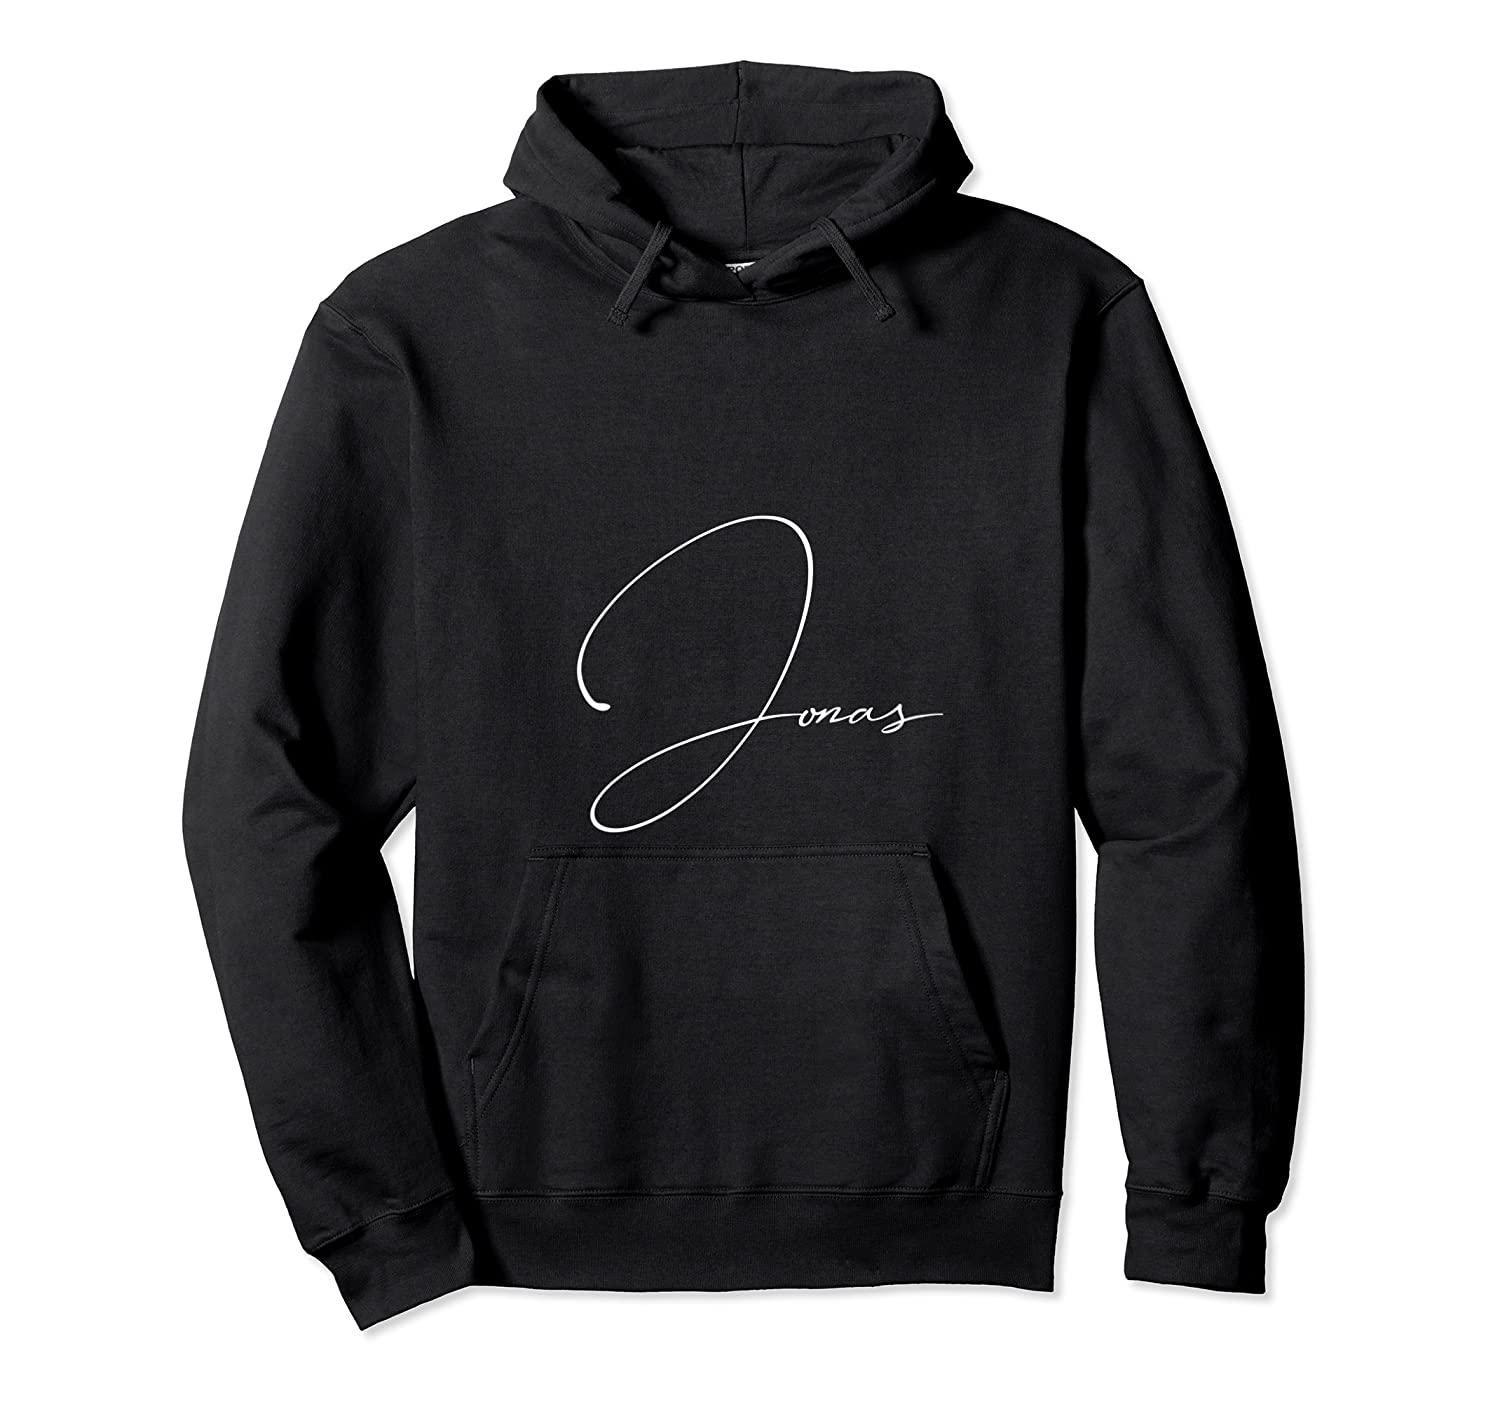 Jonas First Given Name Pride Handwritten Font T Shirt Unisex Pullover Hoodie